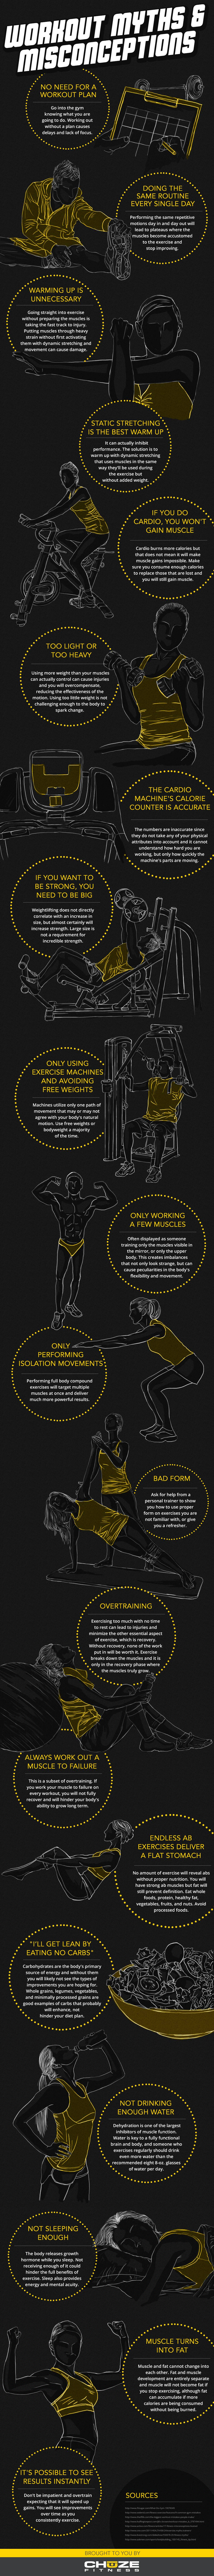 Workout Myths and Misconceptions